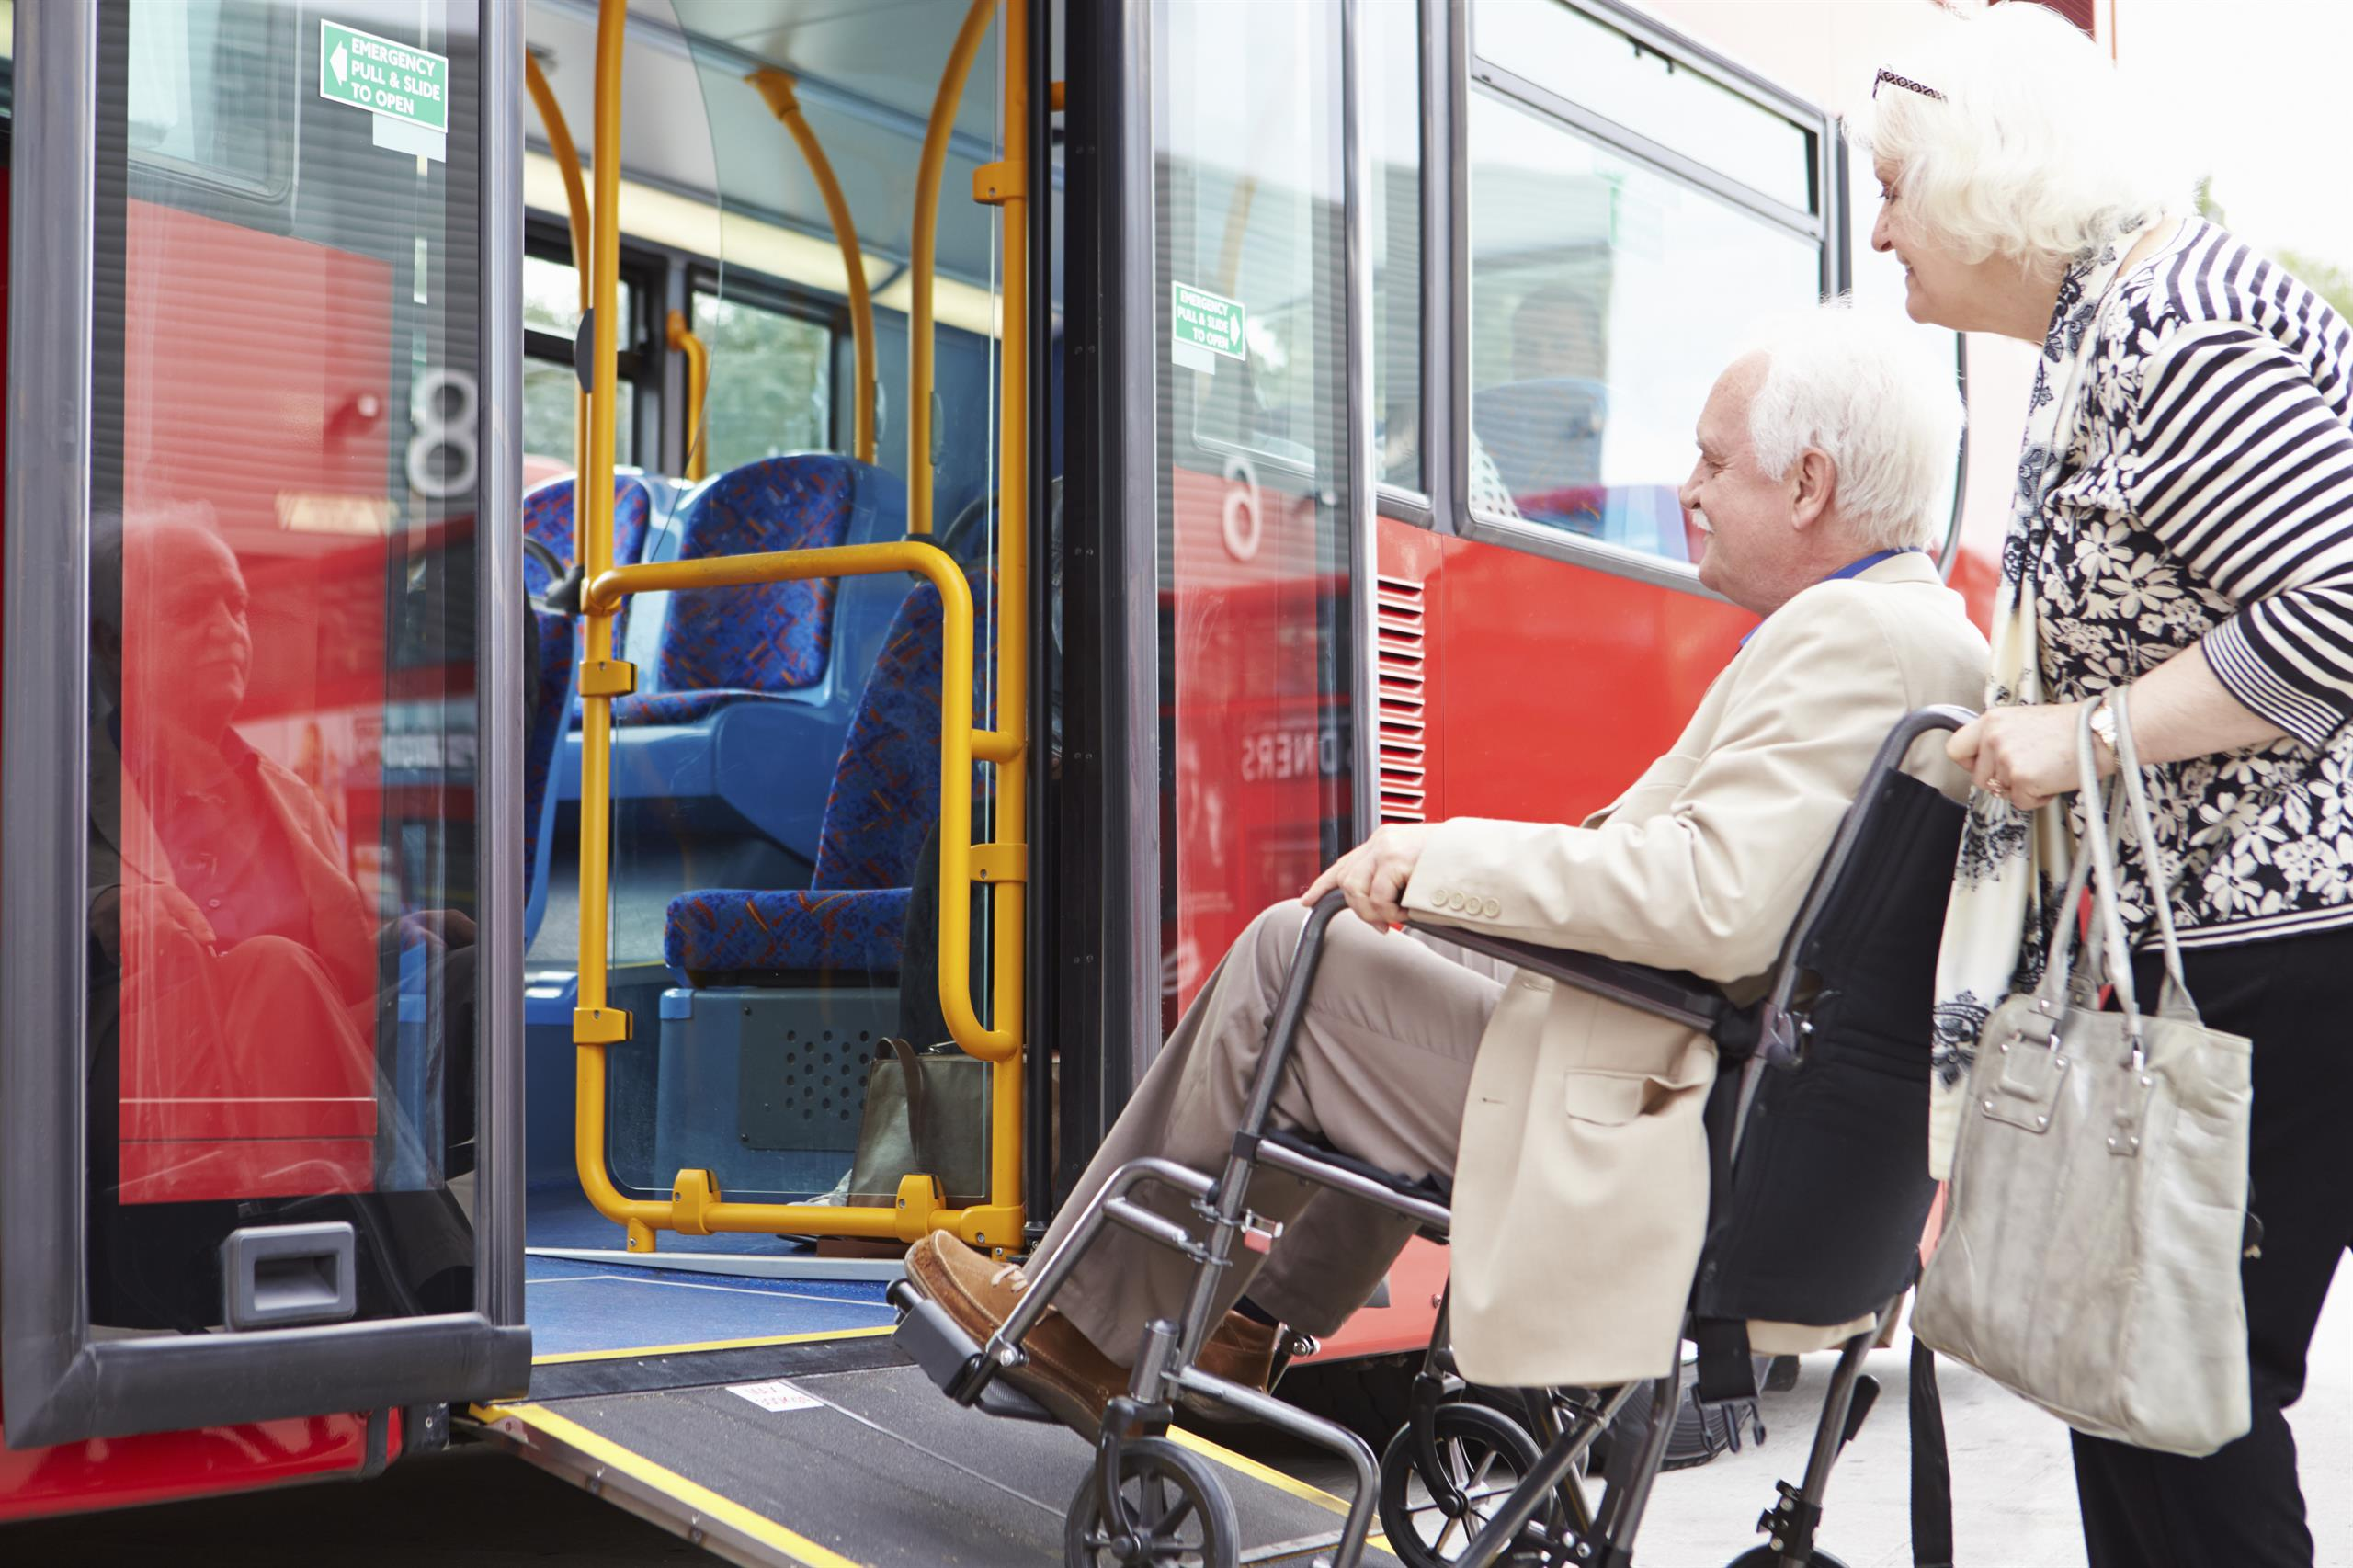 Man in a wheelchair getting support to get onto a bus